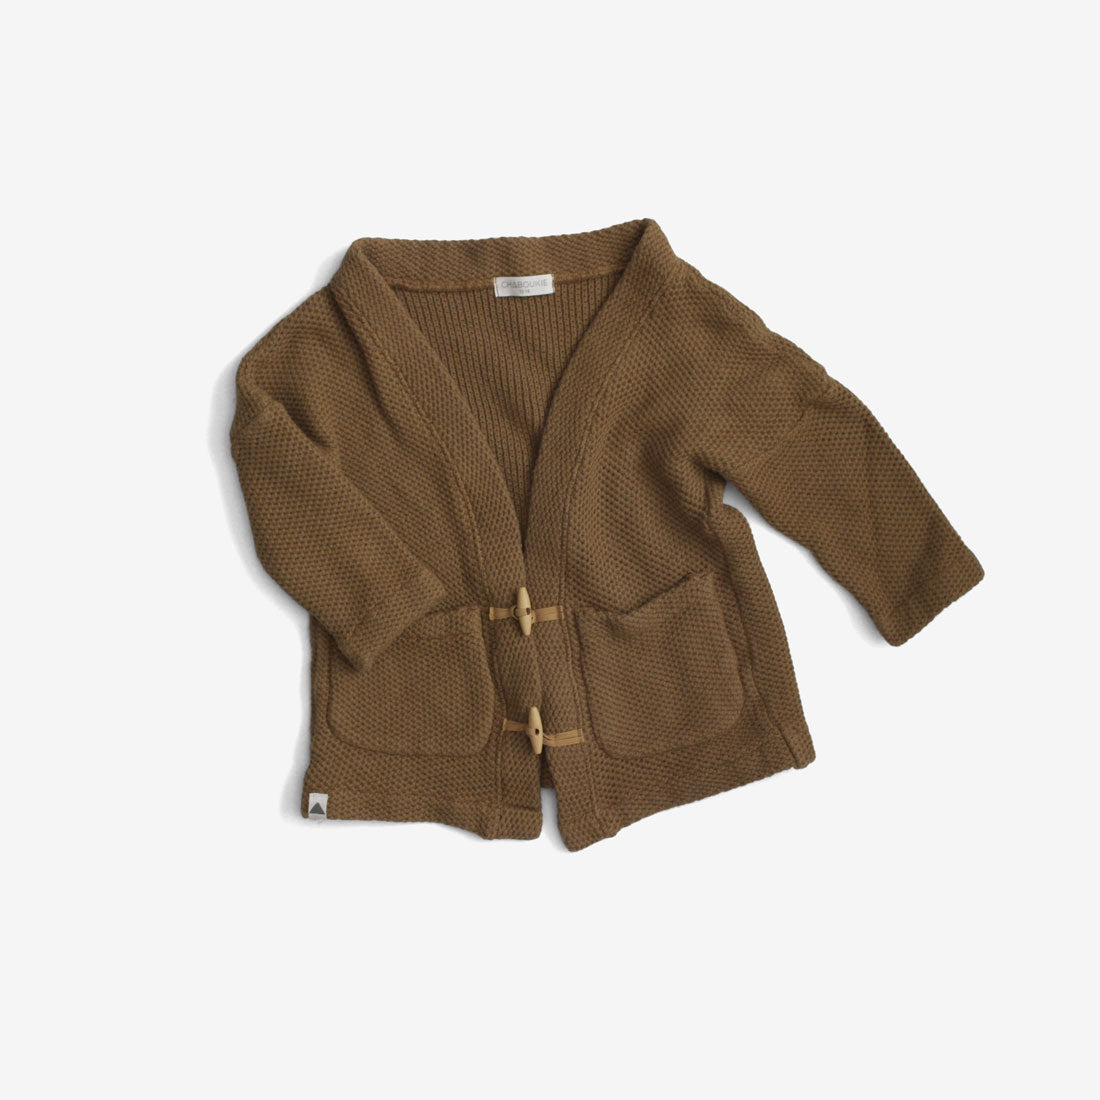 Toggle Cardigan Sweater - Bronze